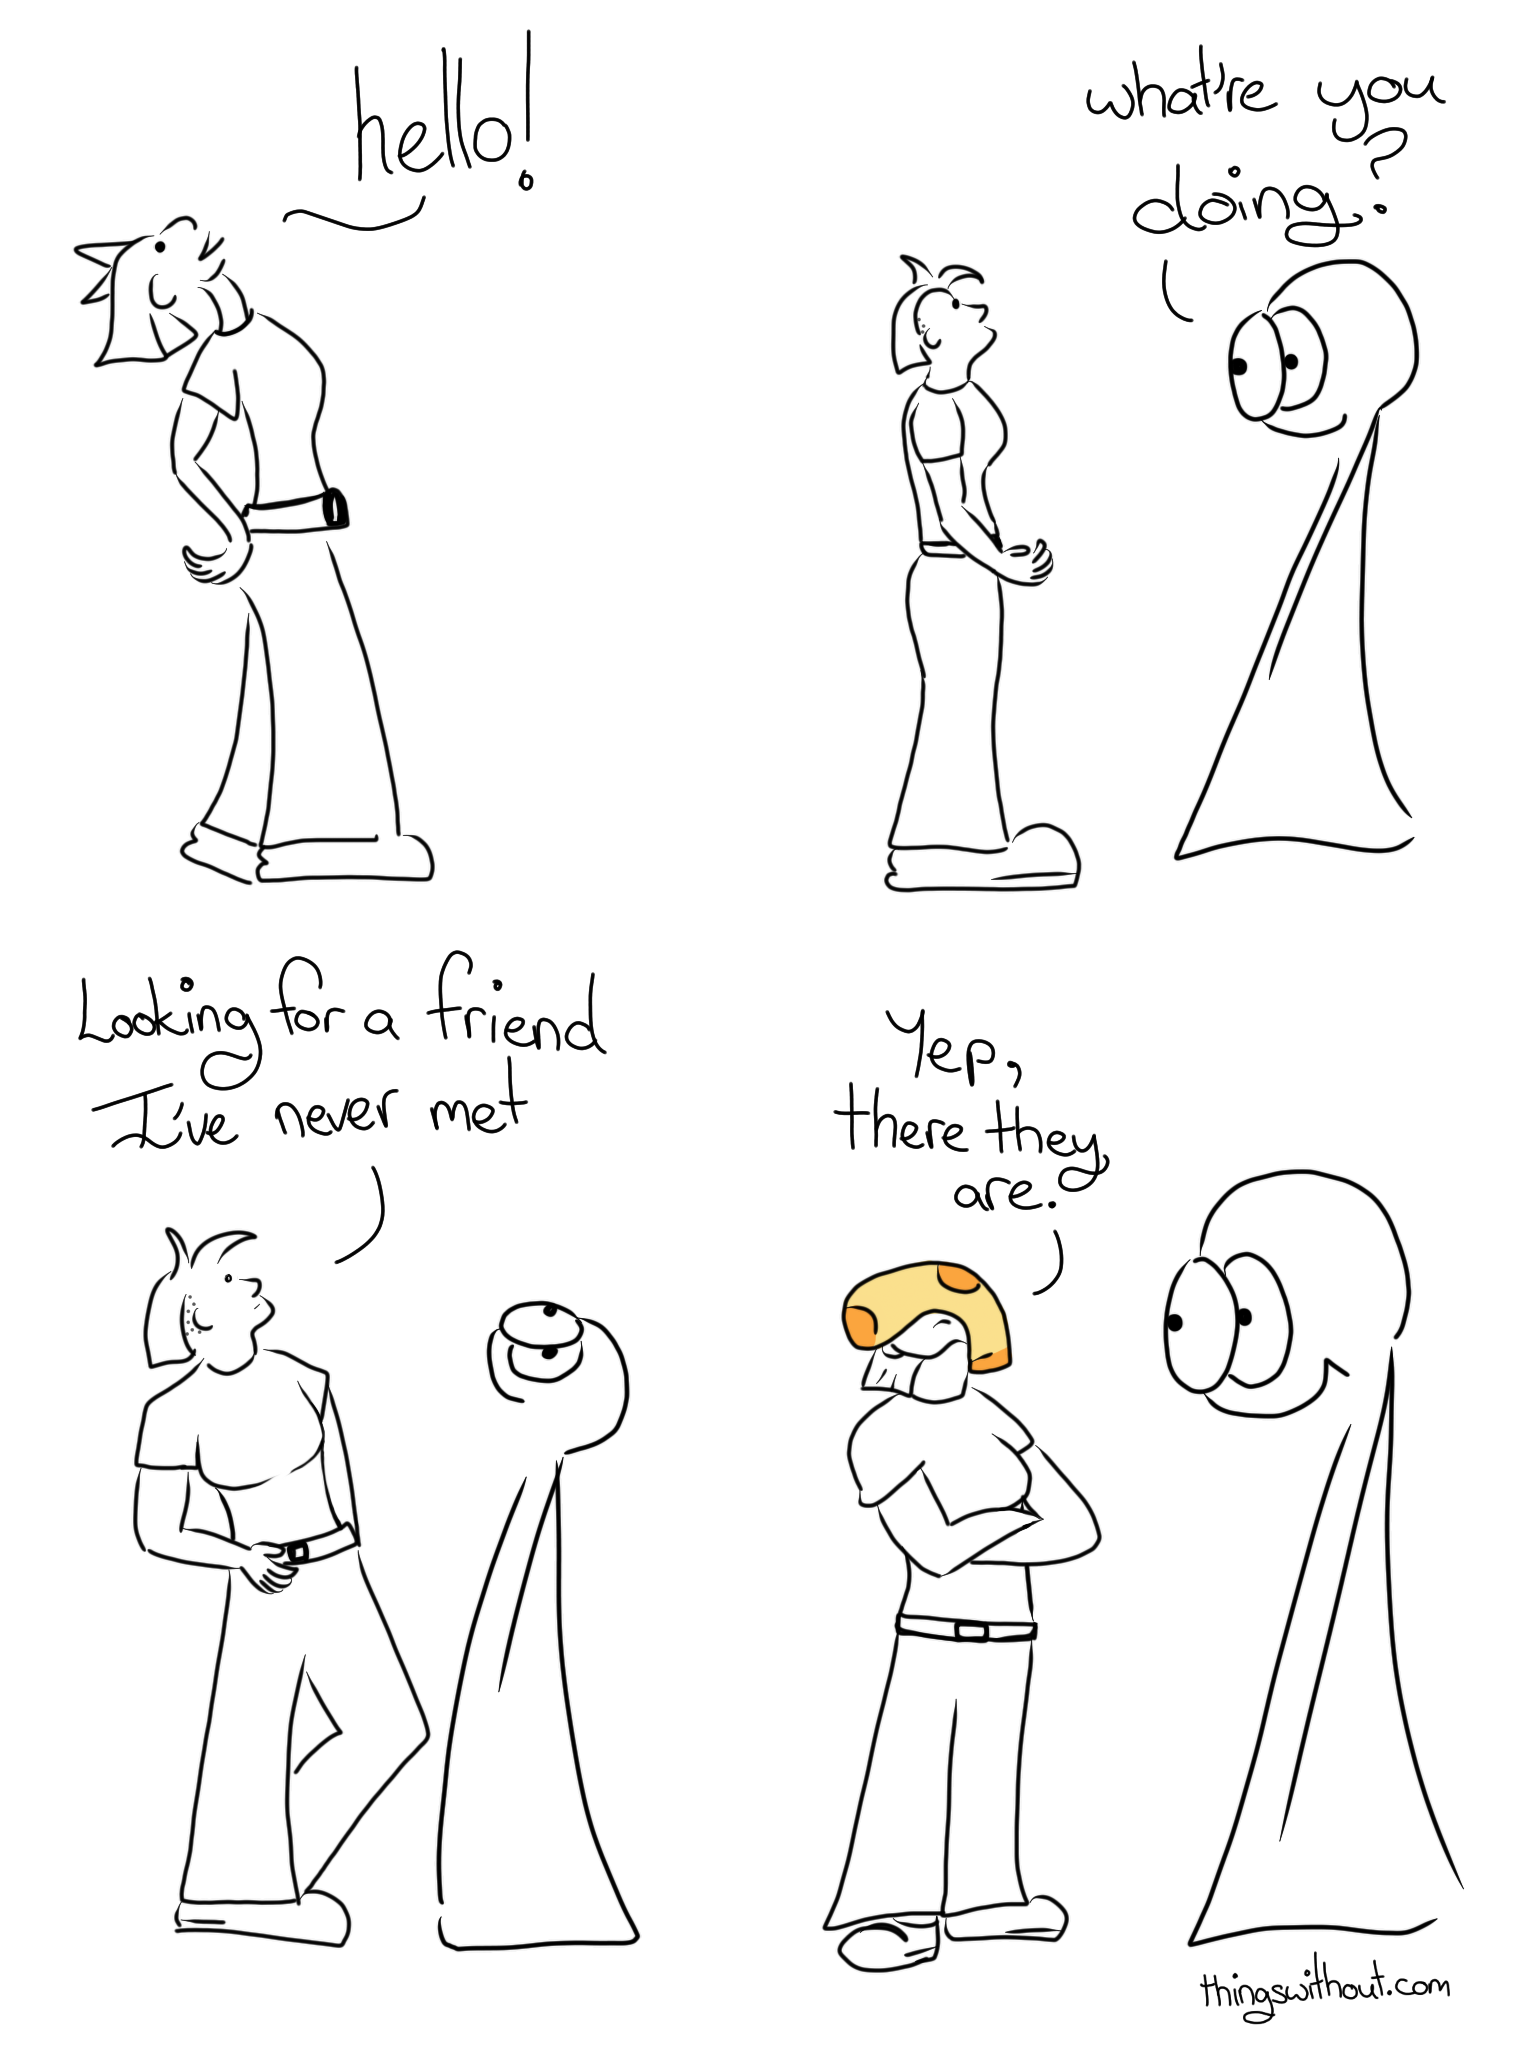 428: Looking for a Friend